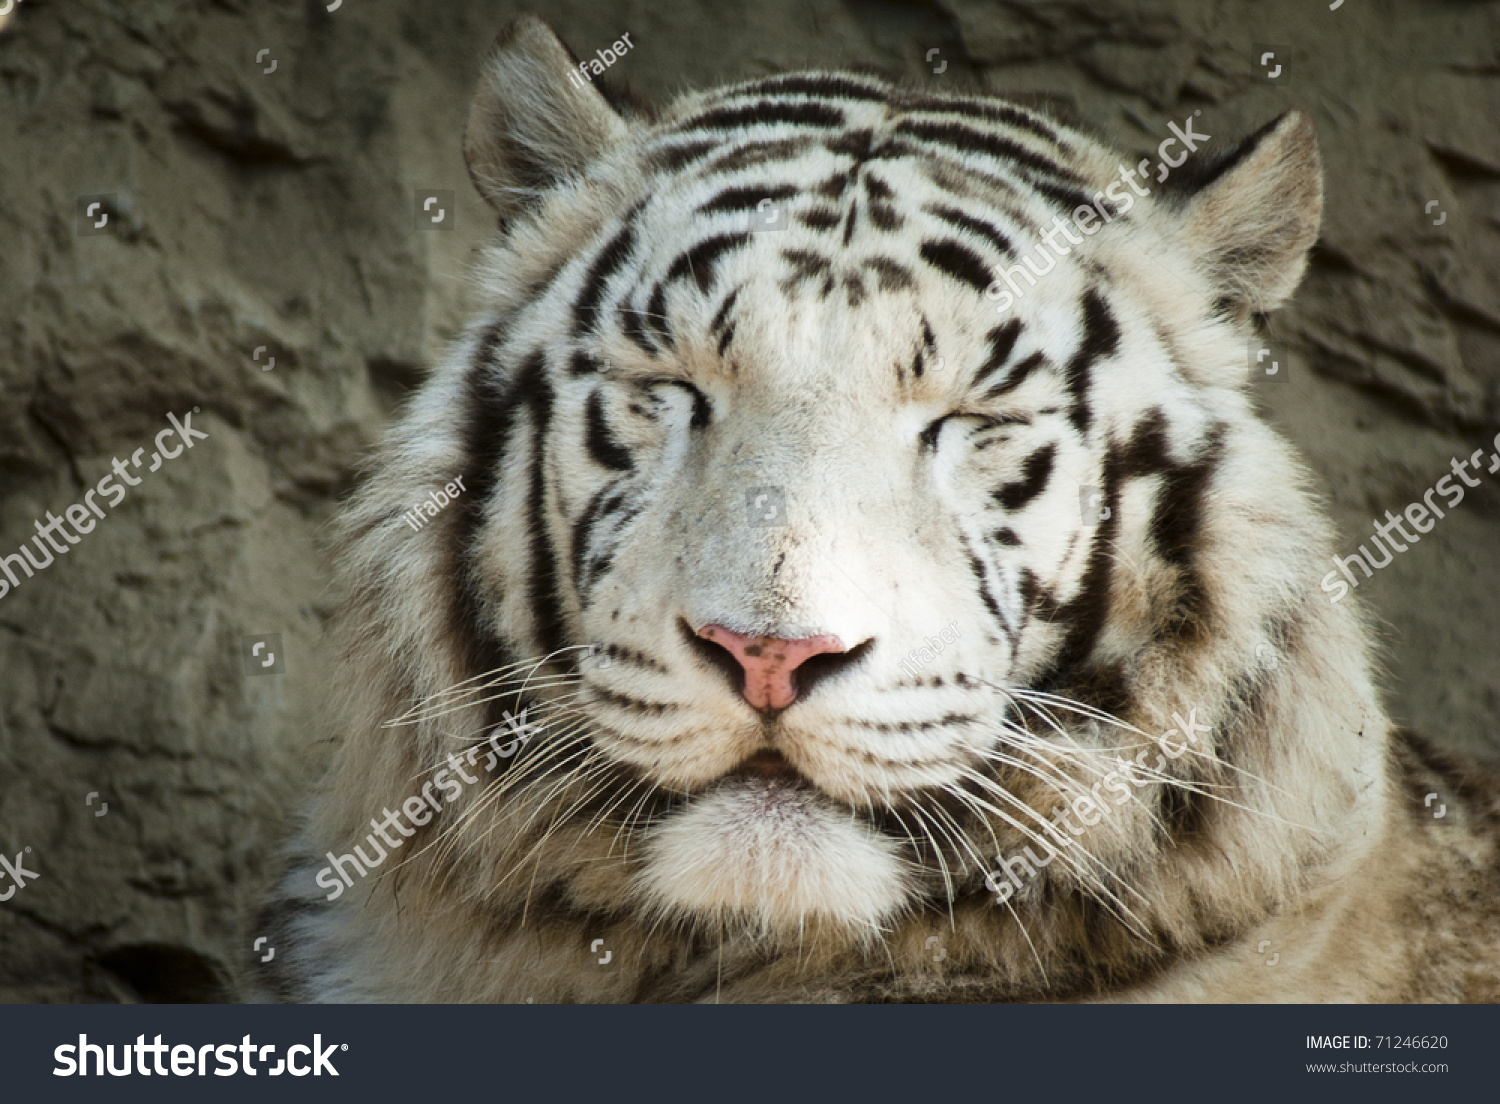 White Tiger Smiling Stock Photo 71246620 - Shutterstock